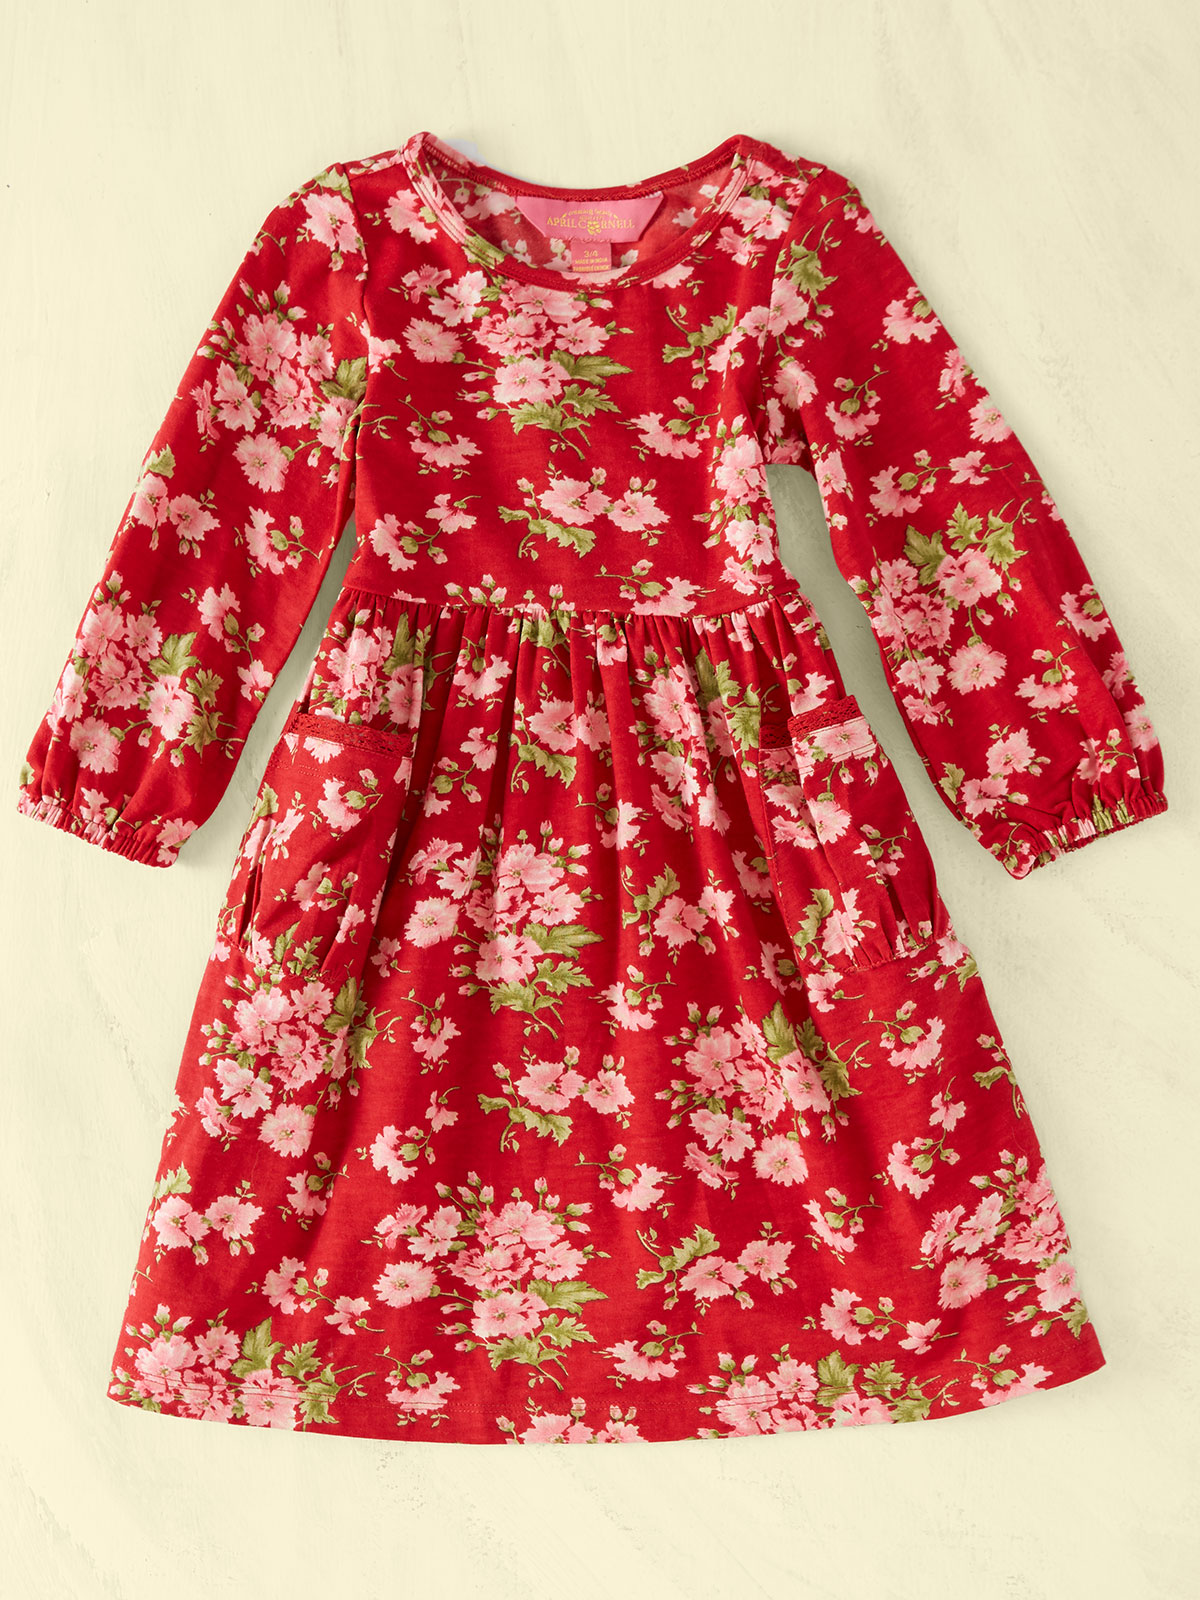 Carnation Jersey Girls Dress